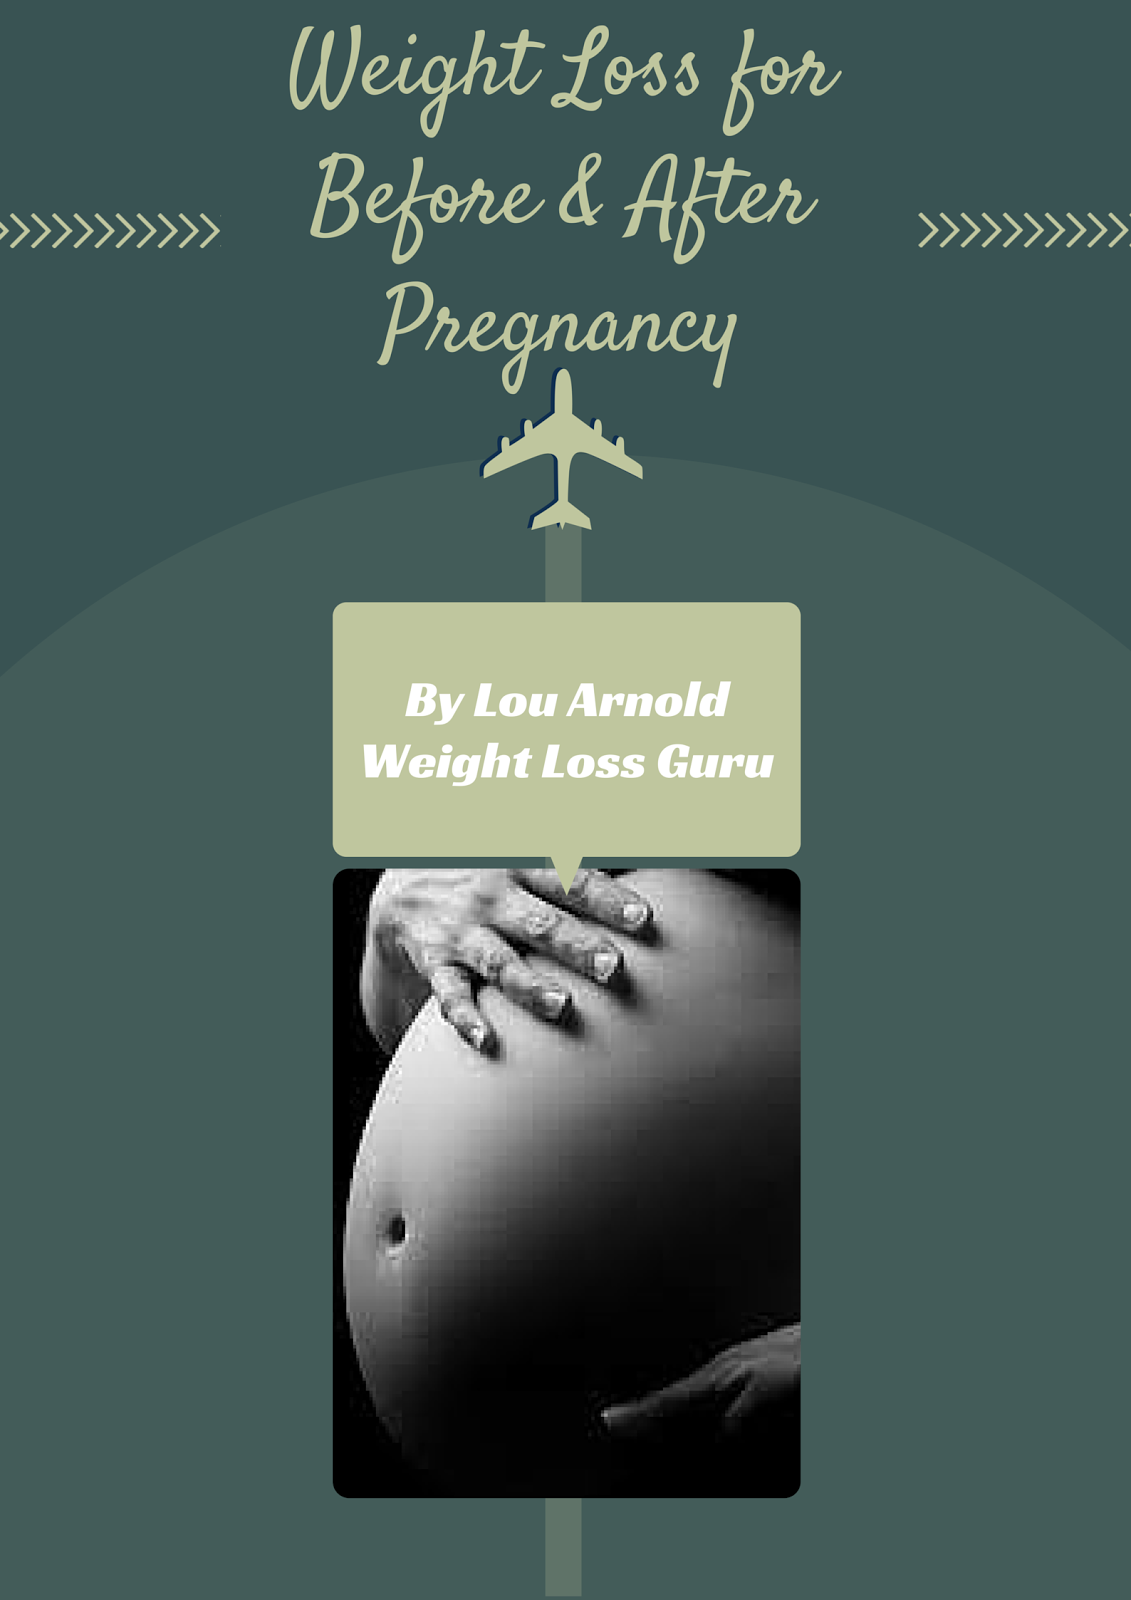 Weight Loss for Before and After Pregnancy